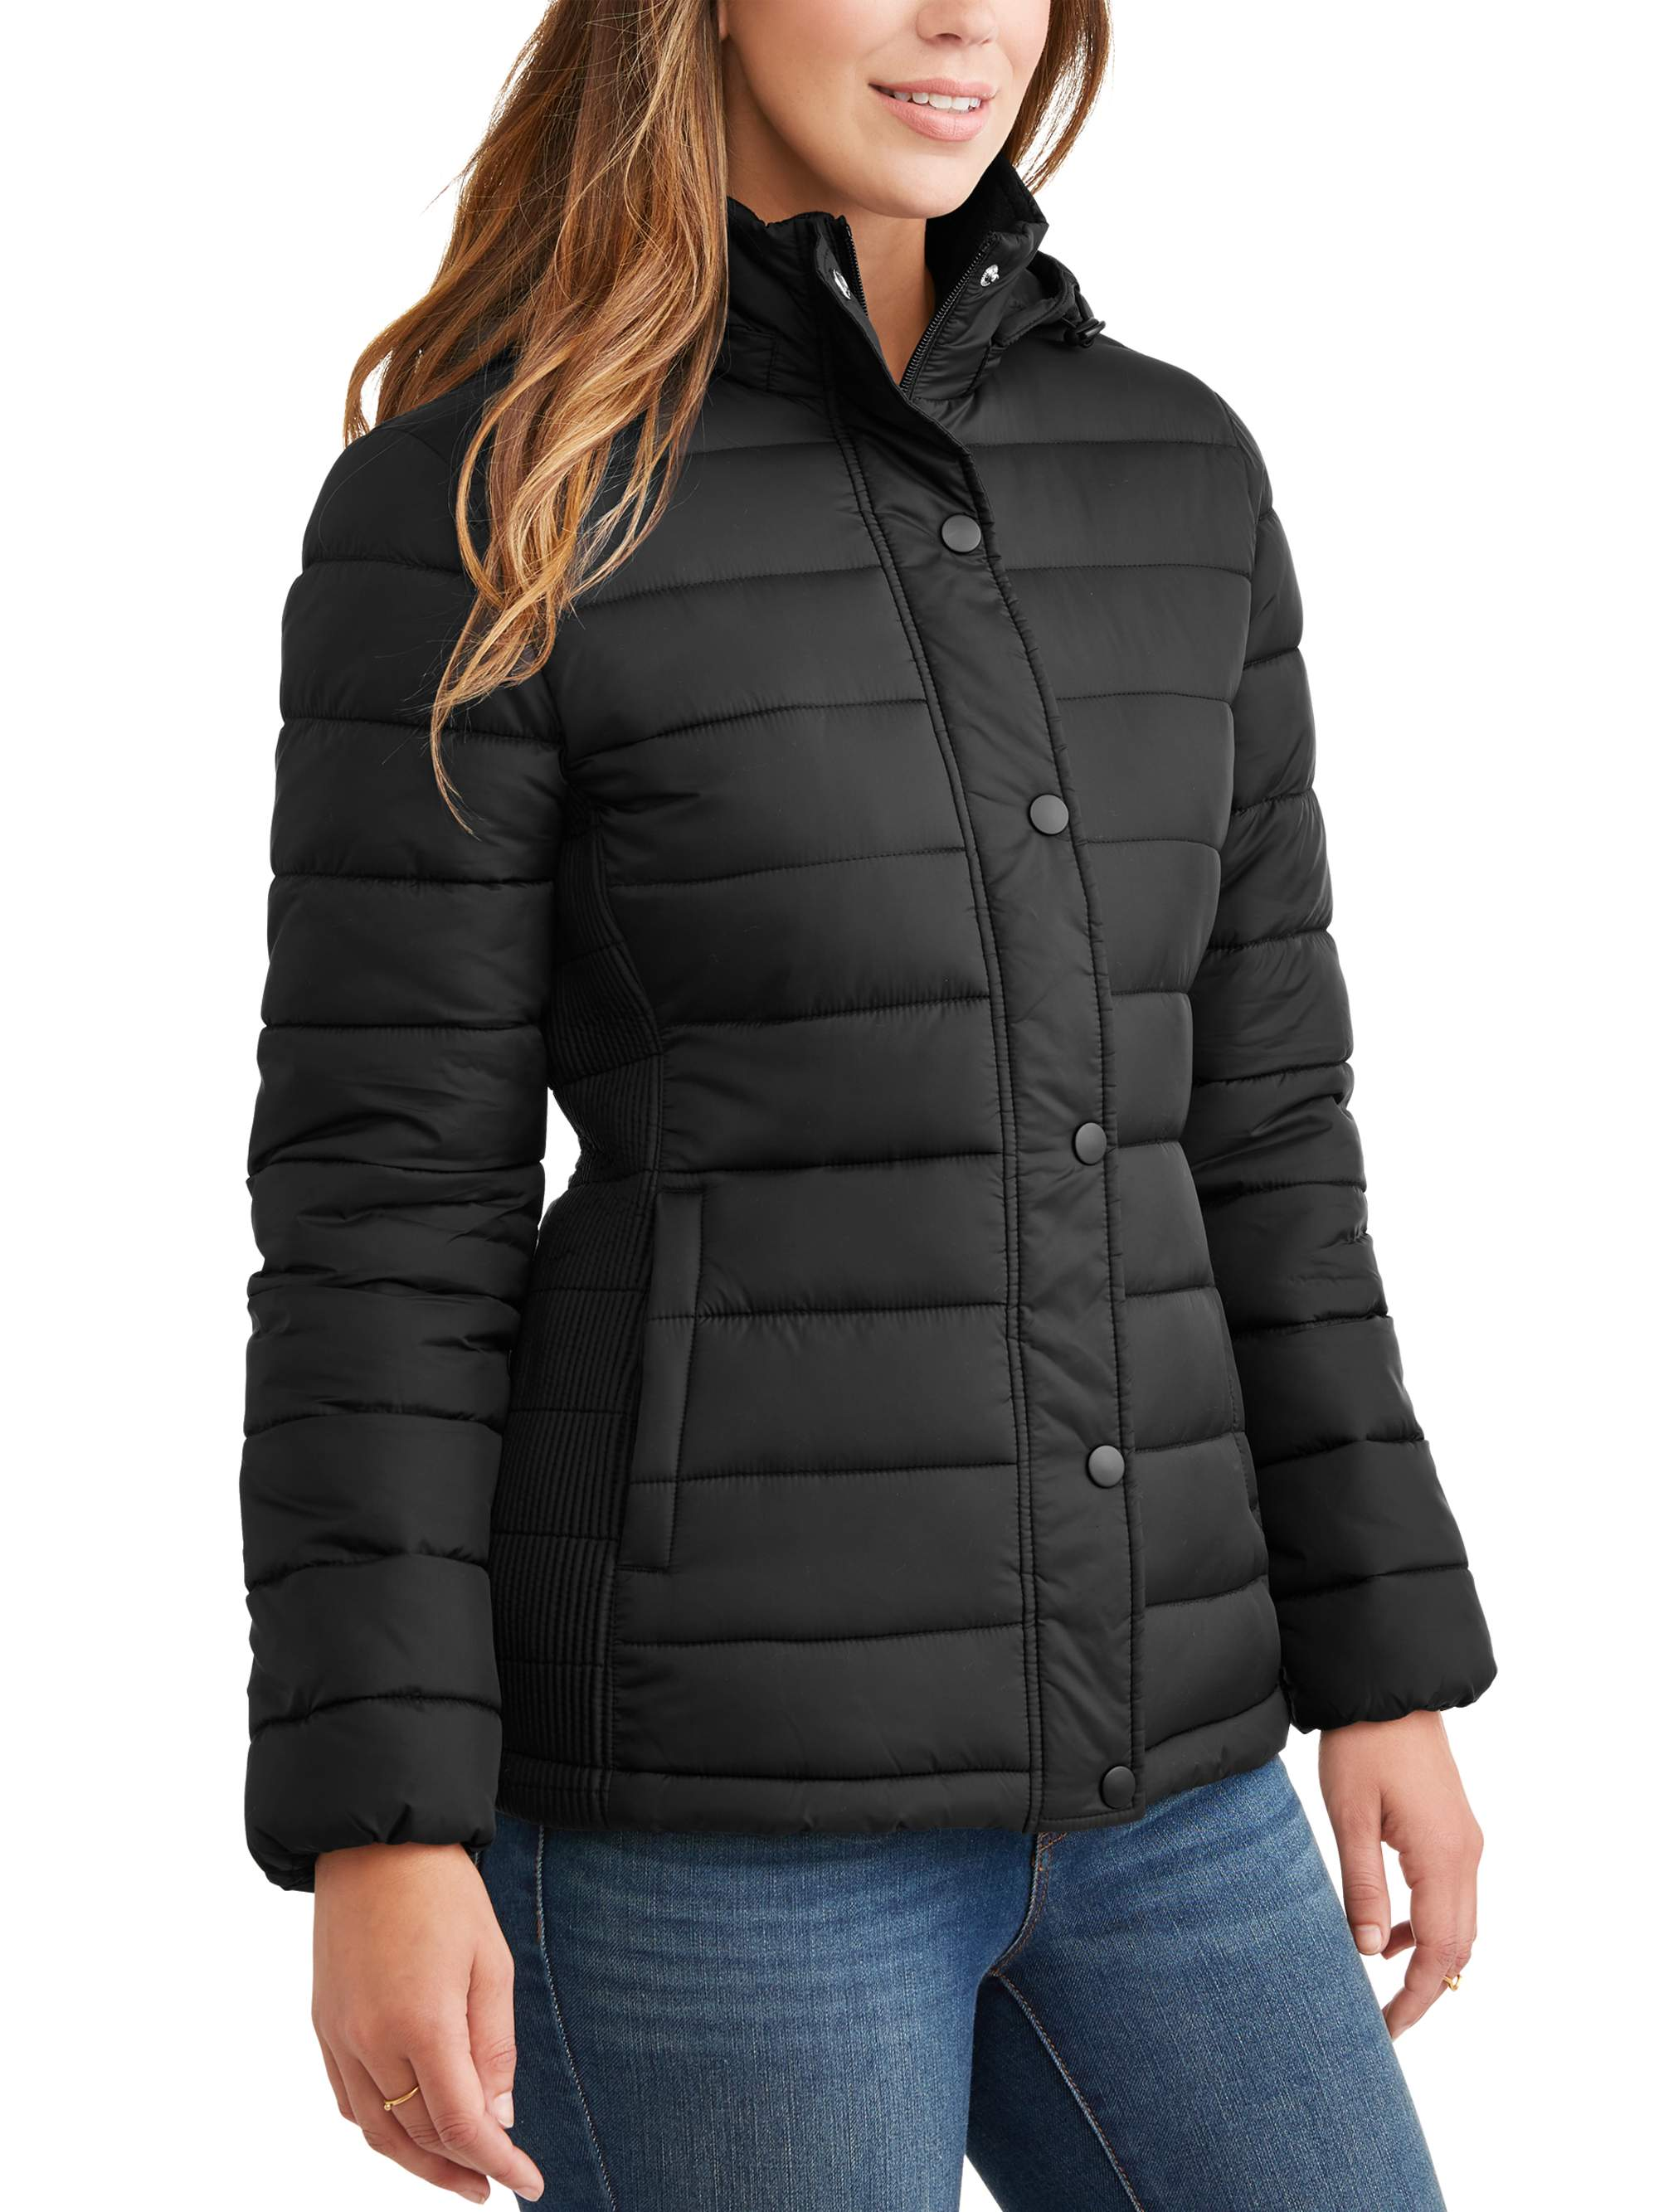 2f65ff4a28f Time and Tru Women s Hooded Puffer Jacket – Walmart Inventory ...